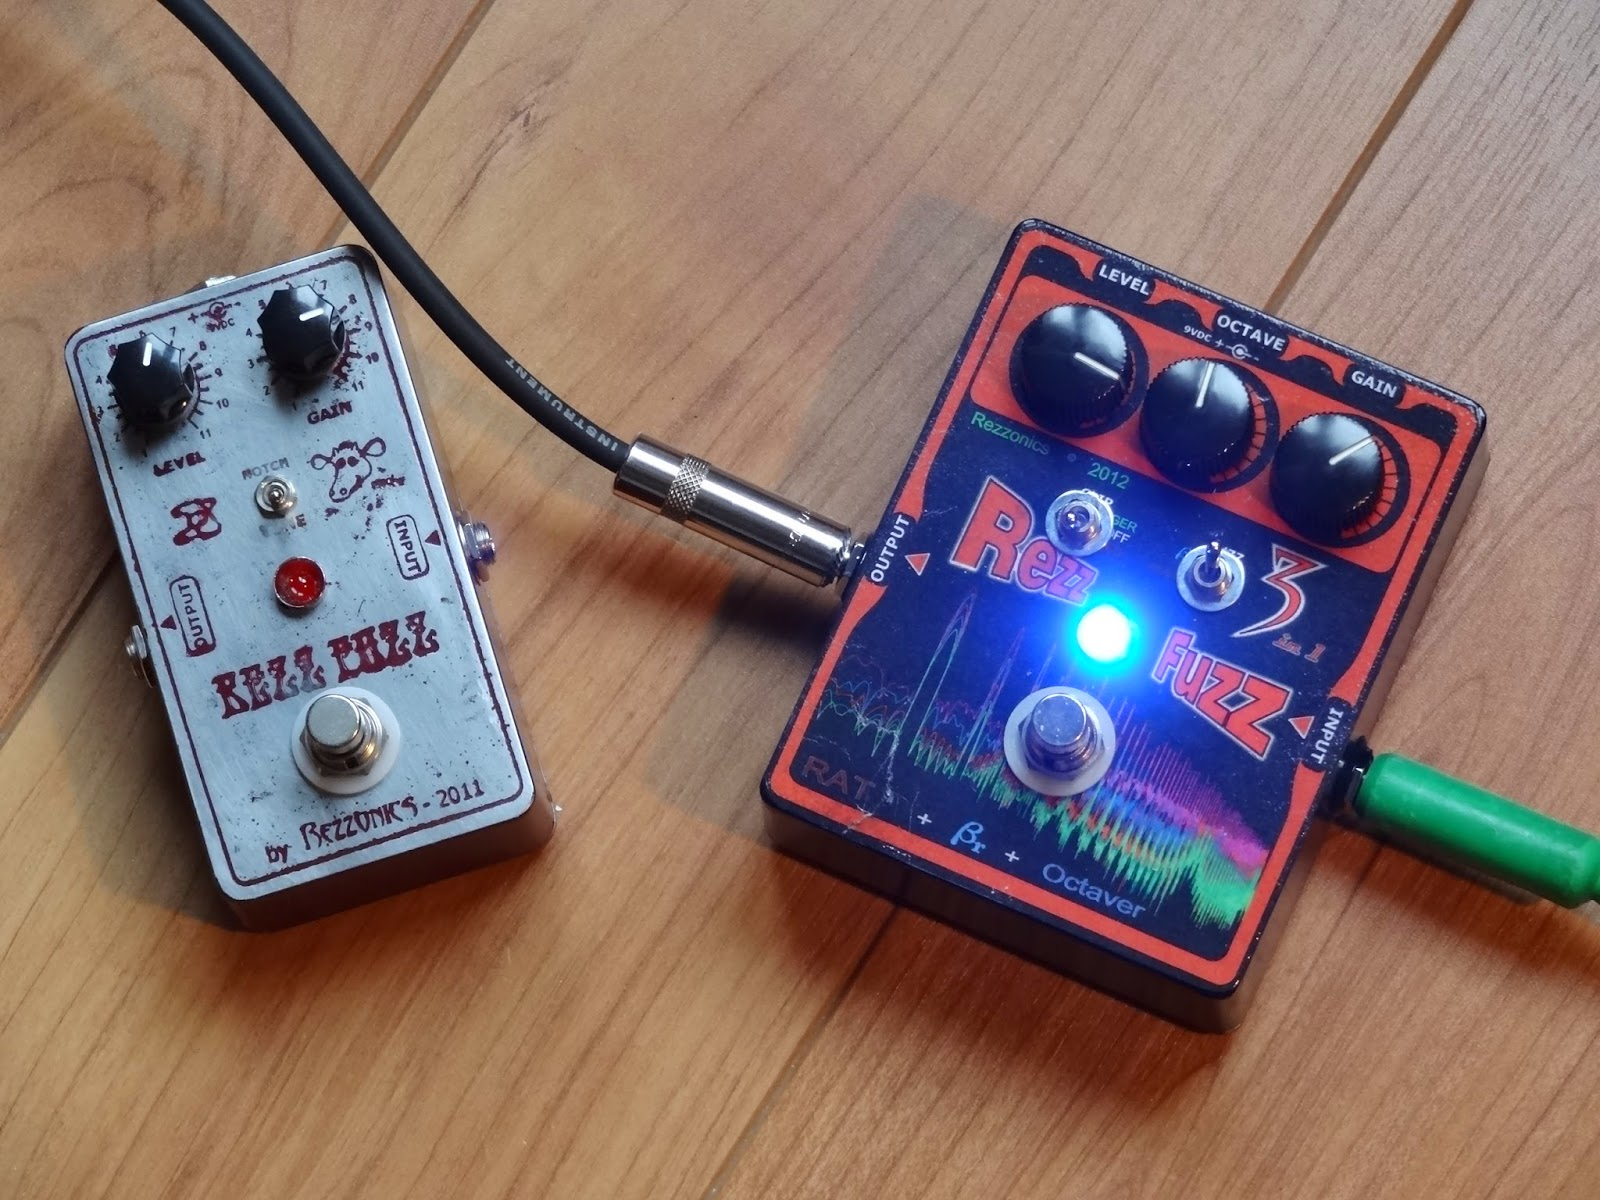 Rezzonics Shin Ei Fuzz Wah Univox Unicord Super Not A Clone Pedal Schematic The Result Was Quite Deceiving Circuit Has Lots Of Gain And It Too Noisy Much Even For Playing Psychocandy Cover Specially When Powered At